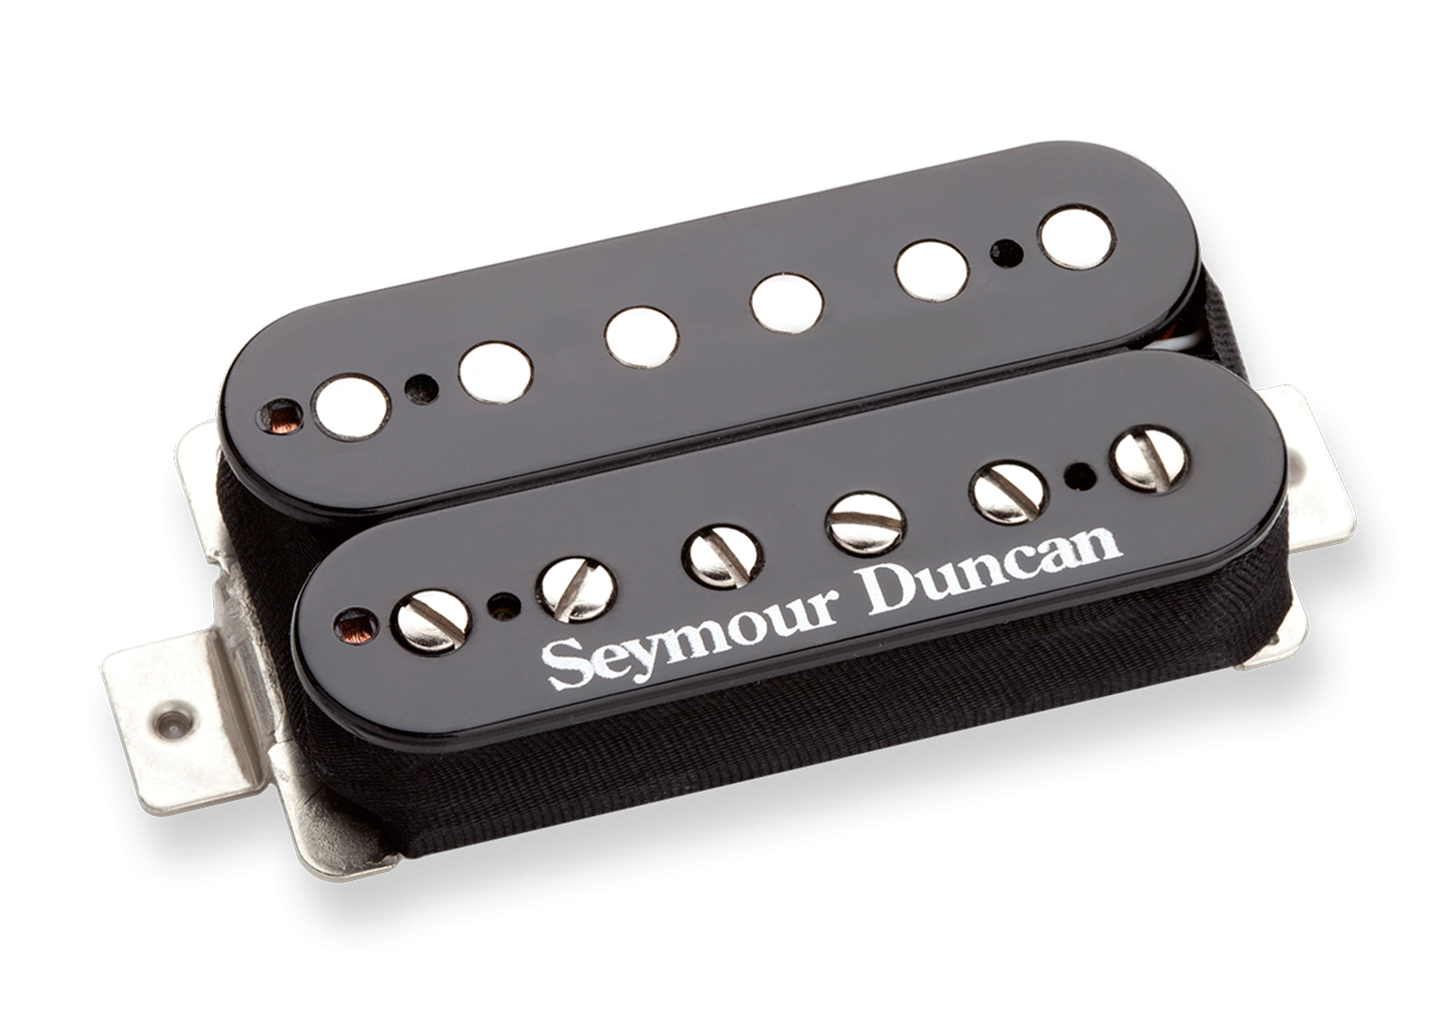 Seymour Duncan Custom 5 Humbucker - SH-14 Black